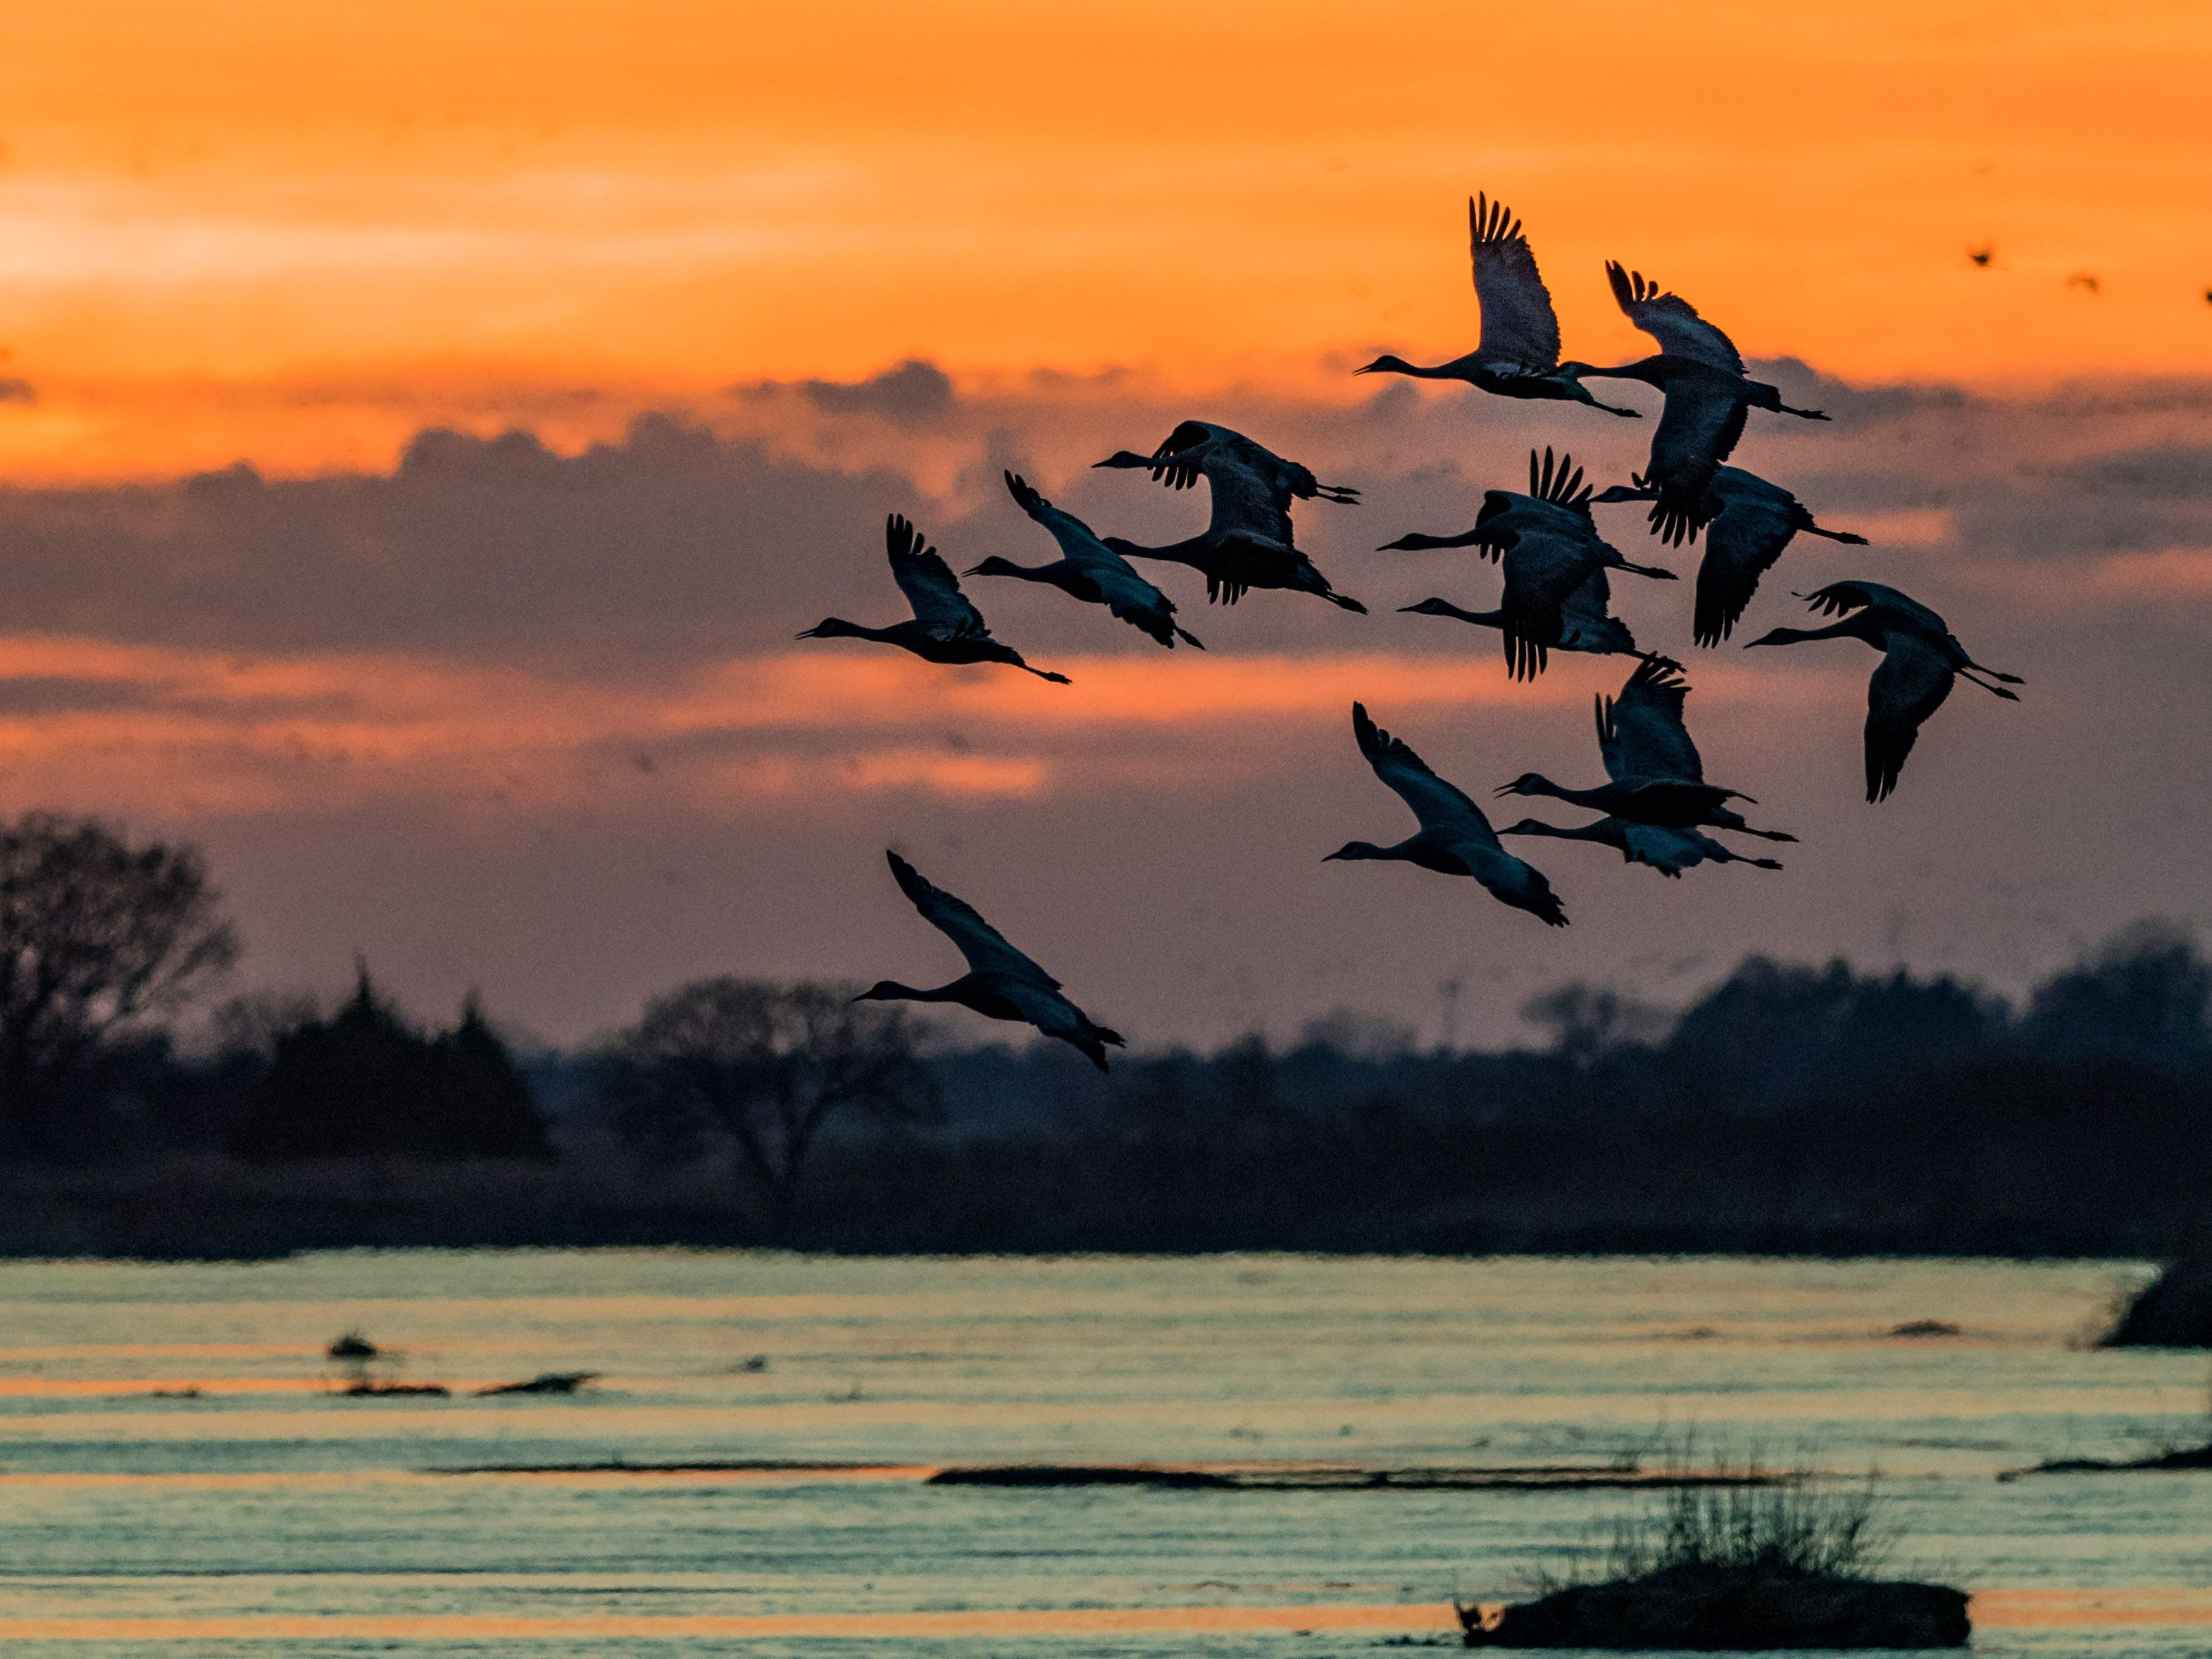 It Was Twilight And Sandhill Cranes >> Sunrise And Sunset From Late February To Early April Are Prime